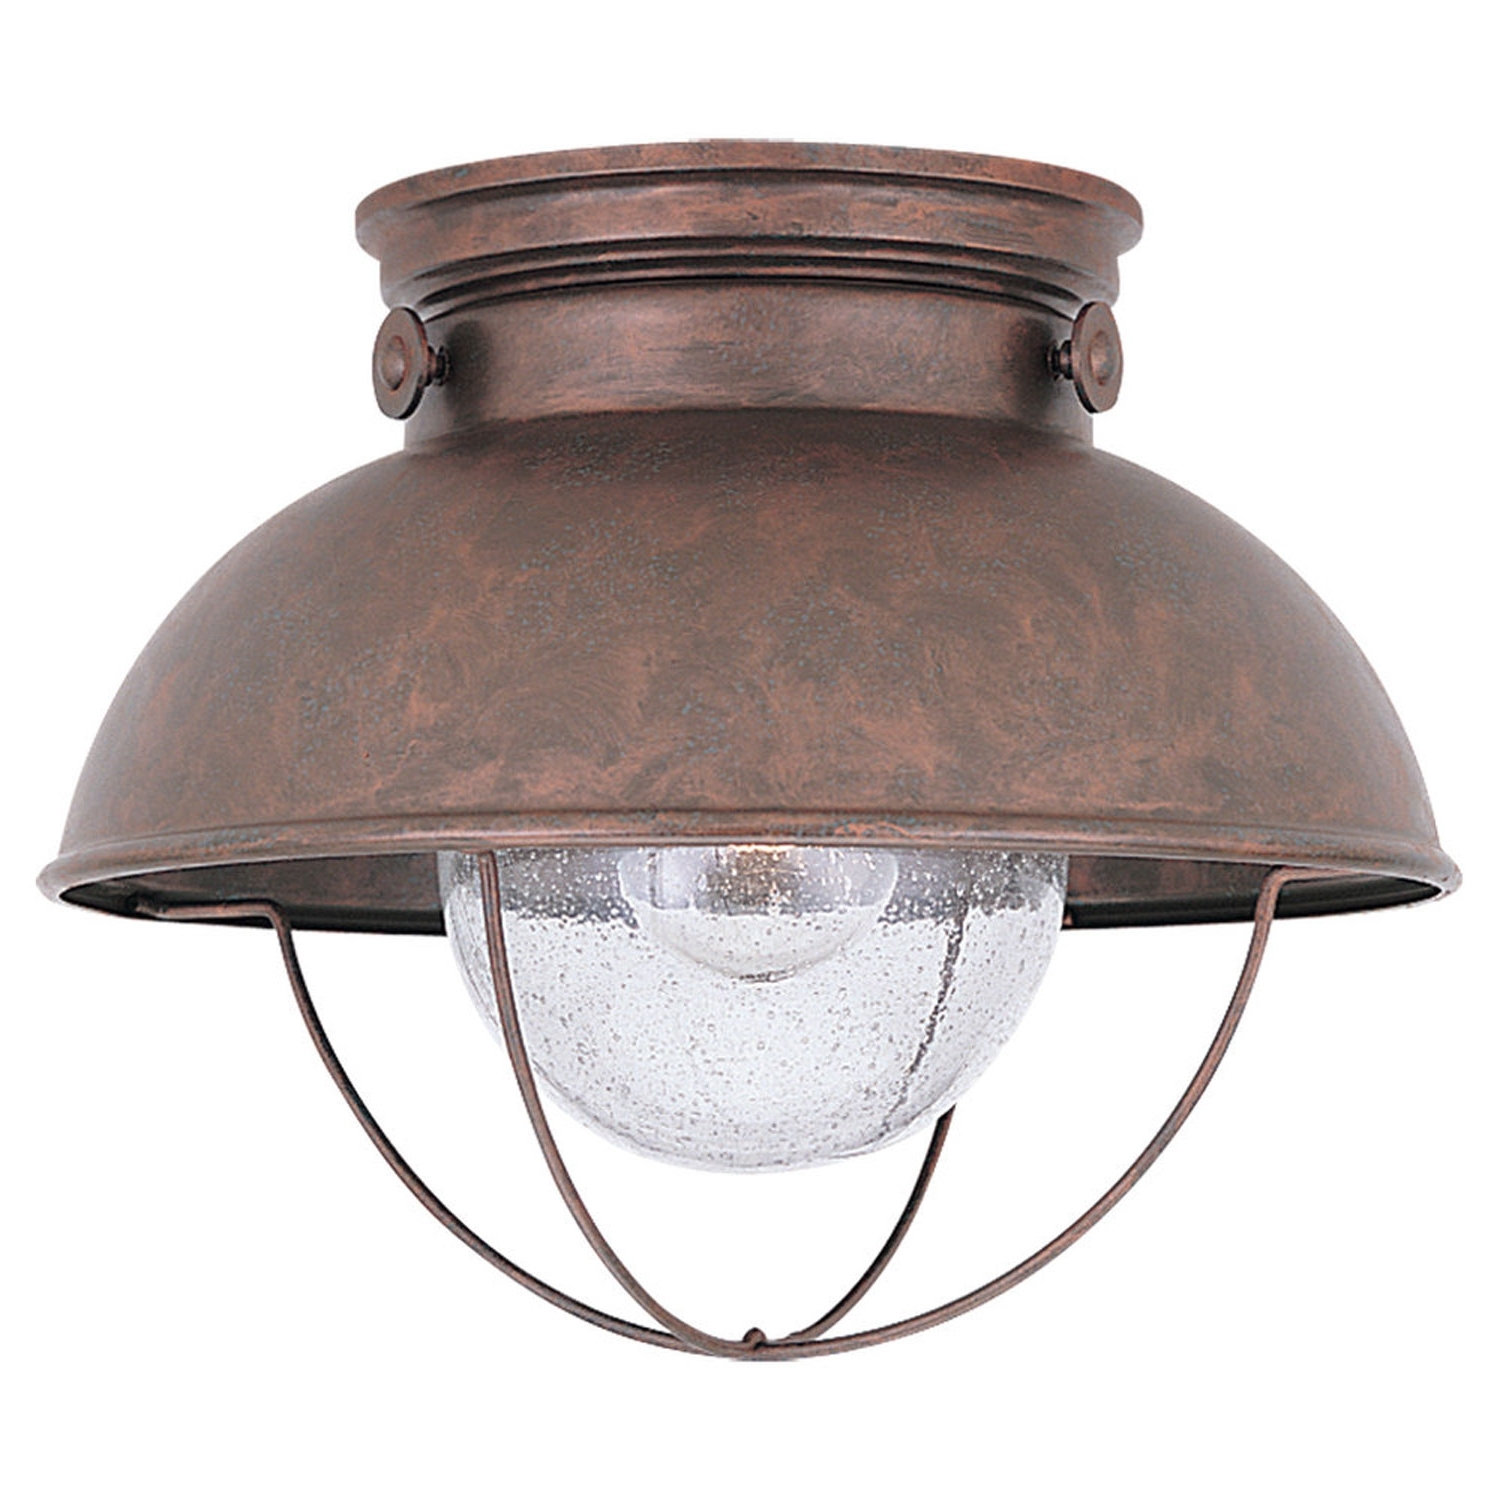 2018 Sea Gull Lighting Sebring Weathered Copper Outdoor Ceiling Light On Sale For Outdoor Ceiling Lights (View 2 of 20)